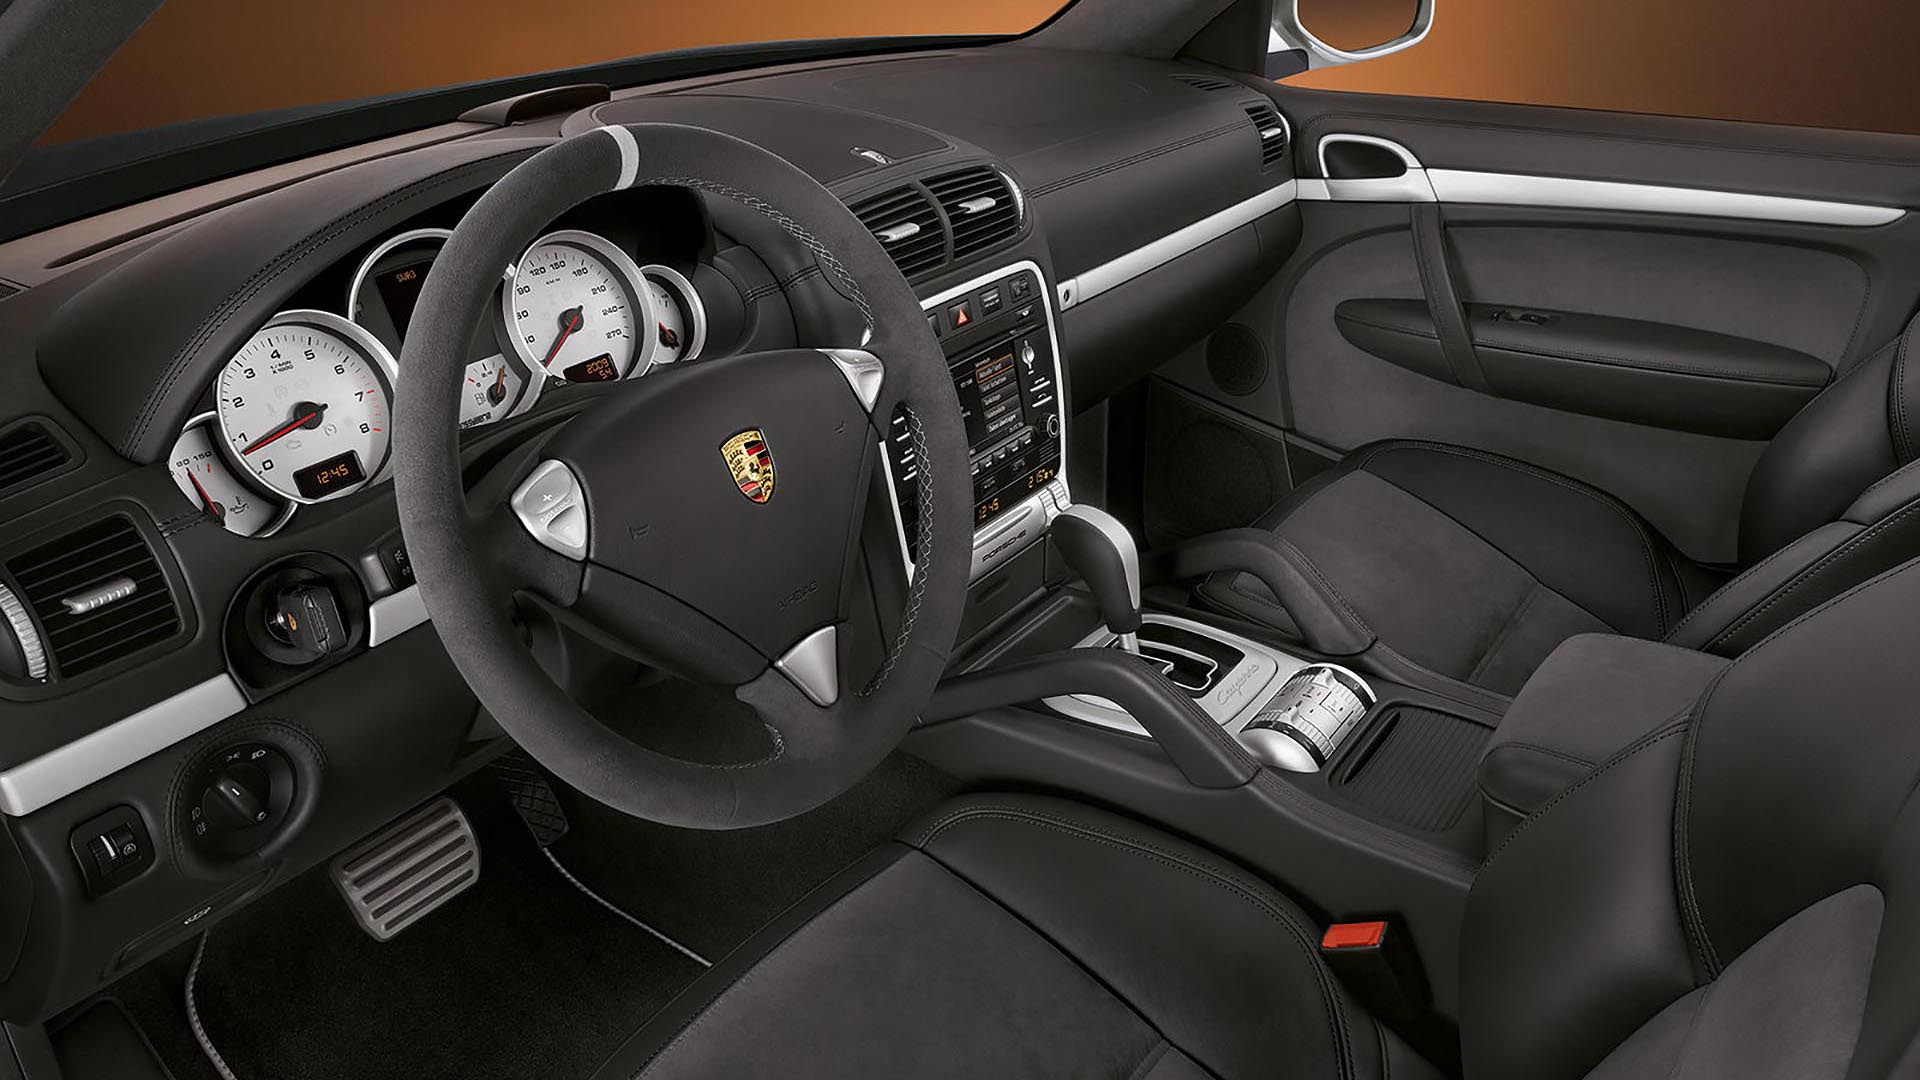 The Definitive Guide To First-Generation Porsche Cayenne Interiors (955/957)